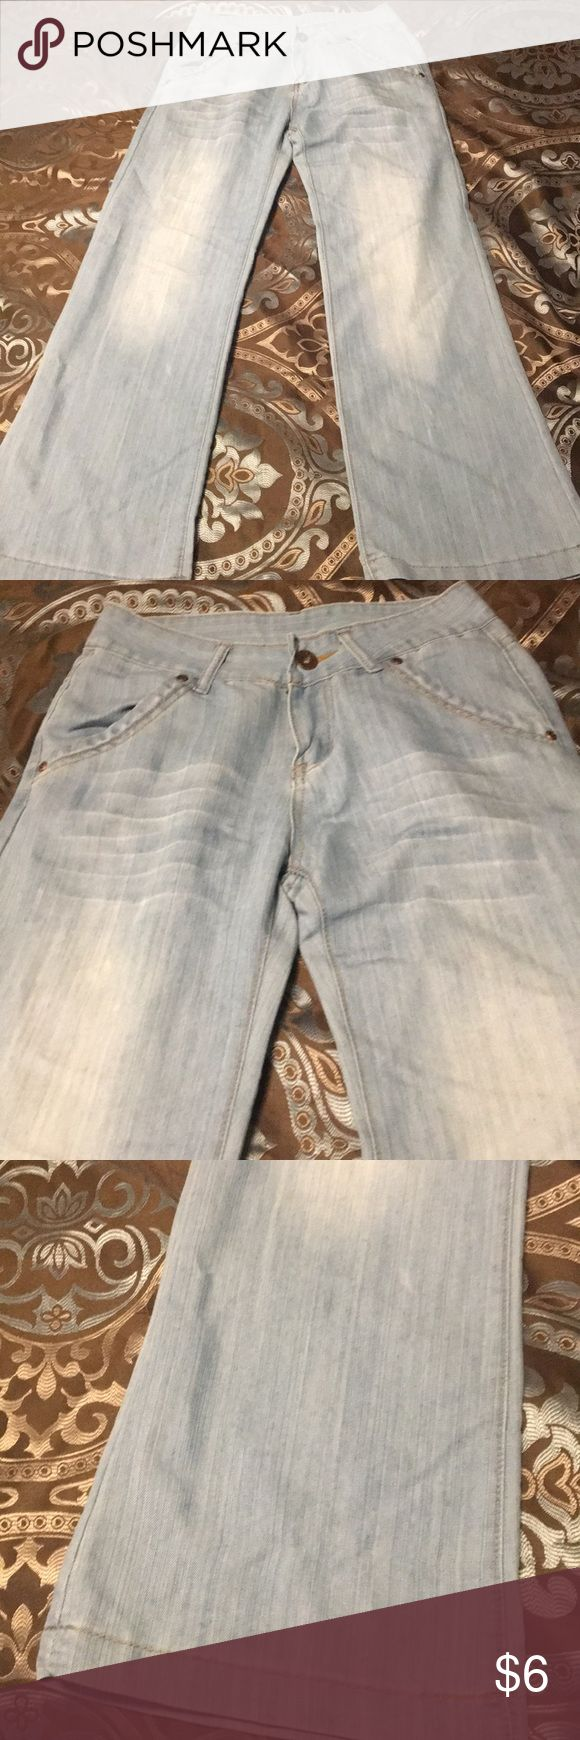 Size 3 wide leg light denim jeans Only been worn twice. So they are in great condition. No signs or wear or stains. Really light weight material. Fits snug in waist and then flares out. Really comfortable pants. Geep Miley Pants Wide Leg